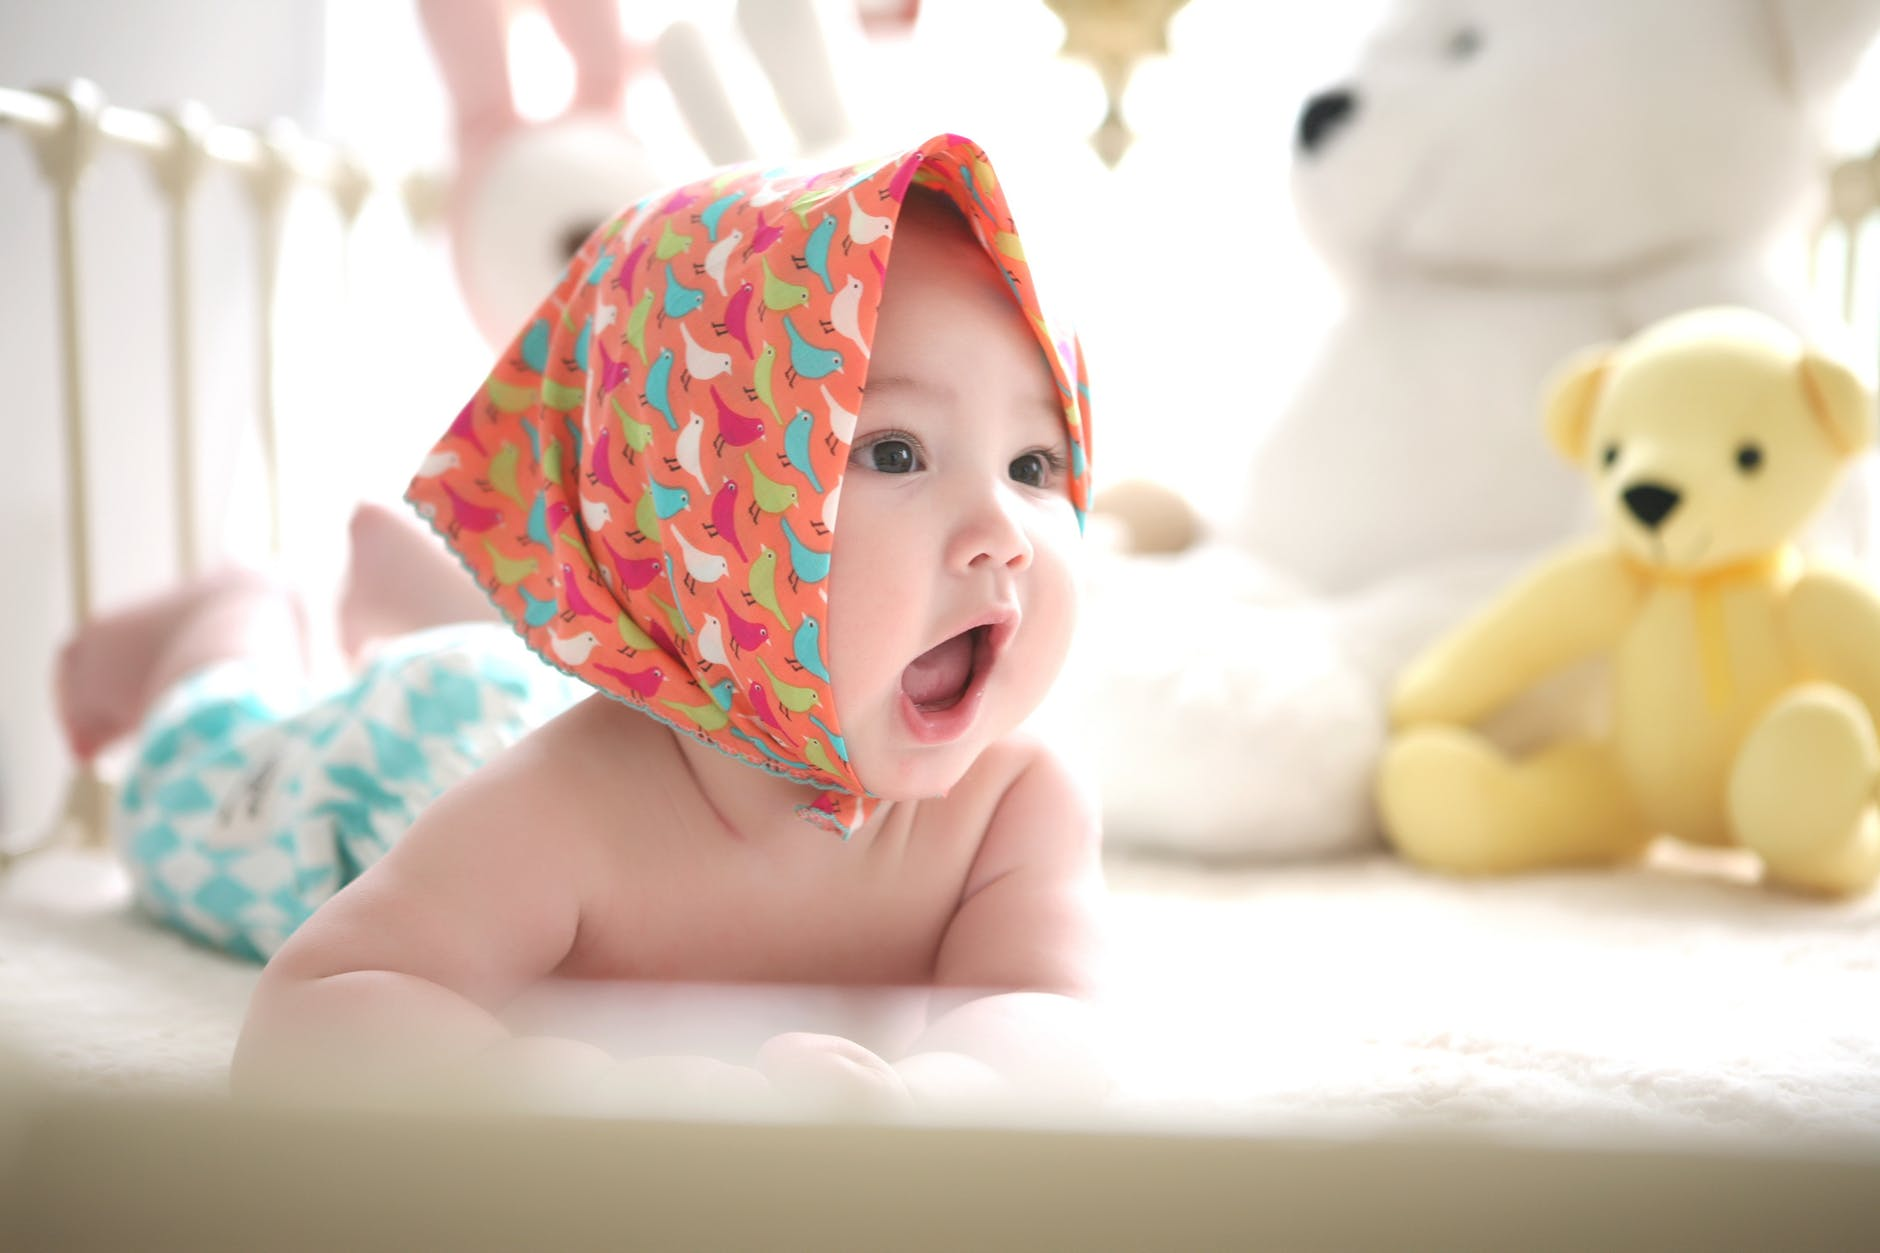 Tummy time: What it is and why it is important